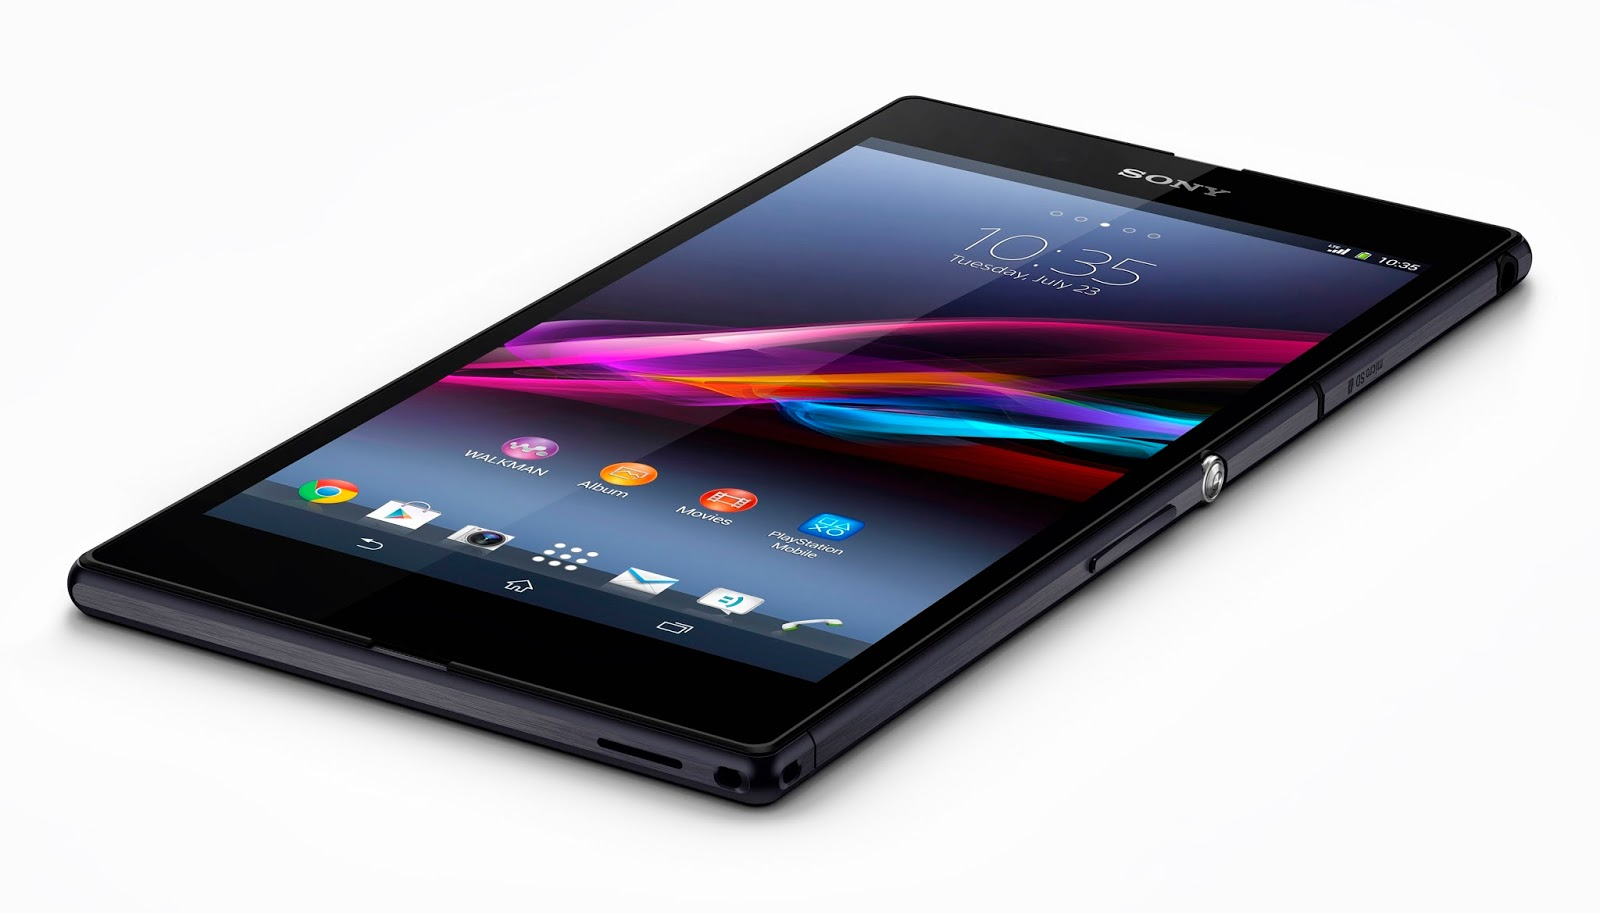 Samsung tab 2 7 review uk dating 10